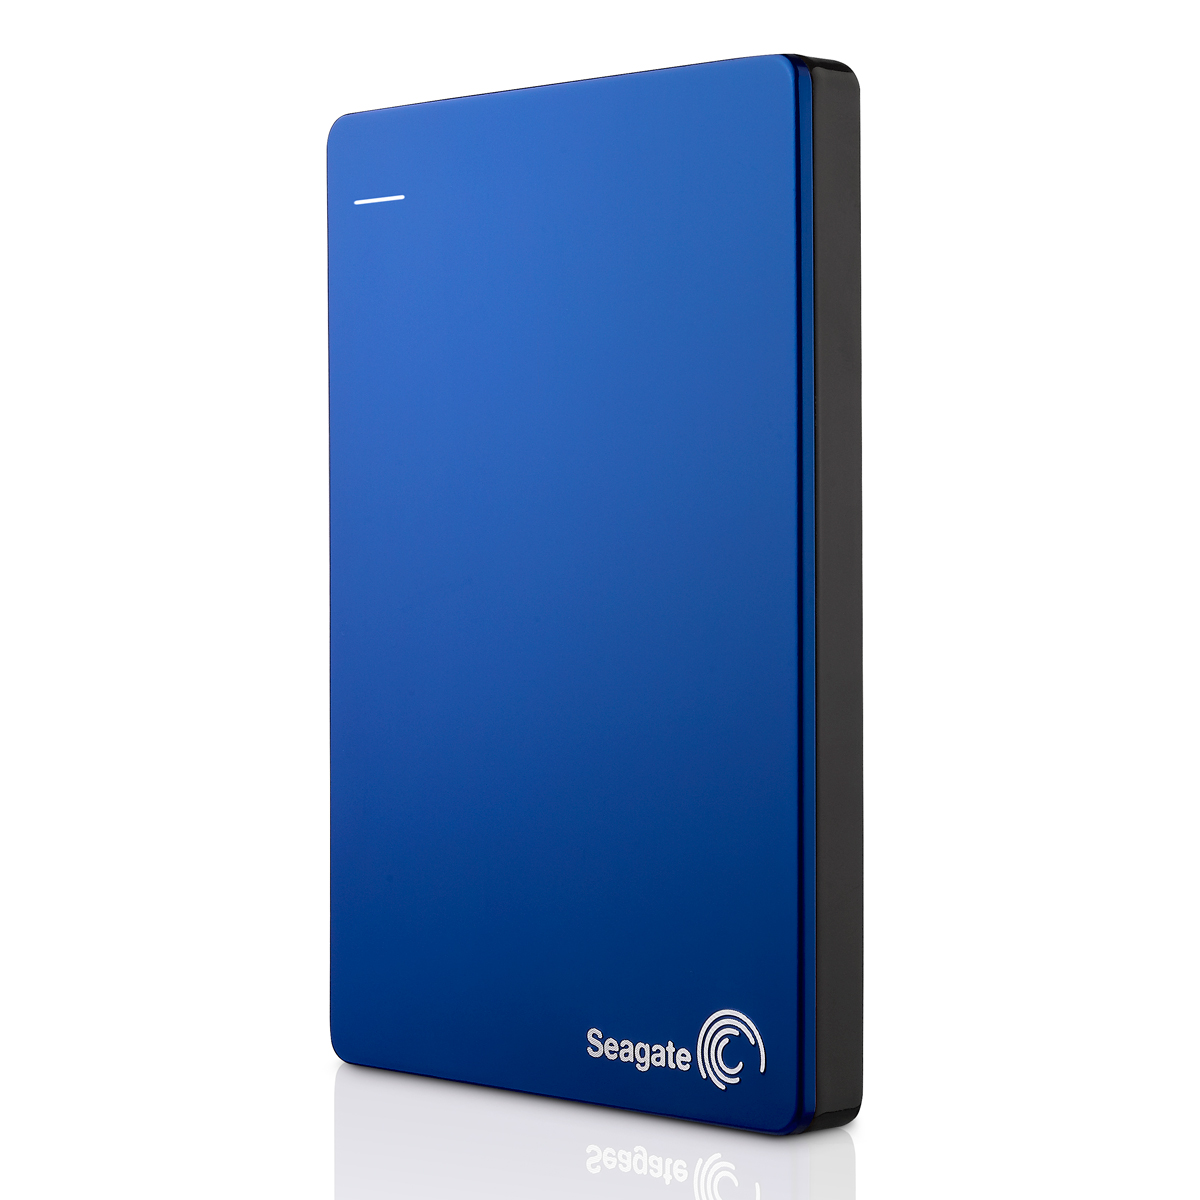 seagate backup plus 1 to bleu usb 3 0 disque dur. Black Bedroom Furniture Sets. Home Design Ideas